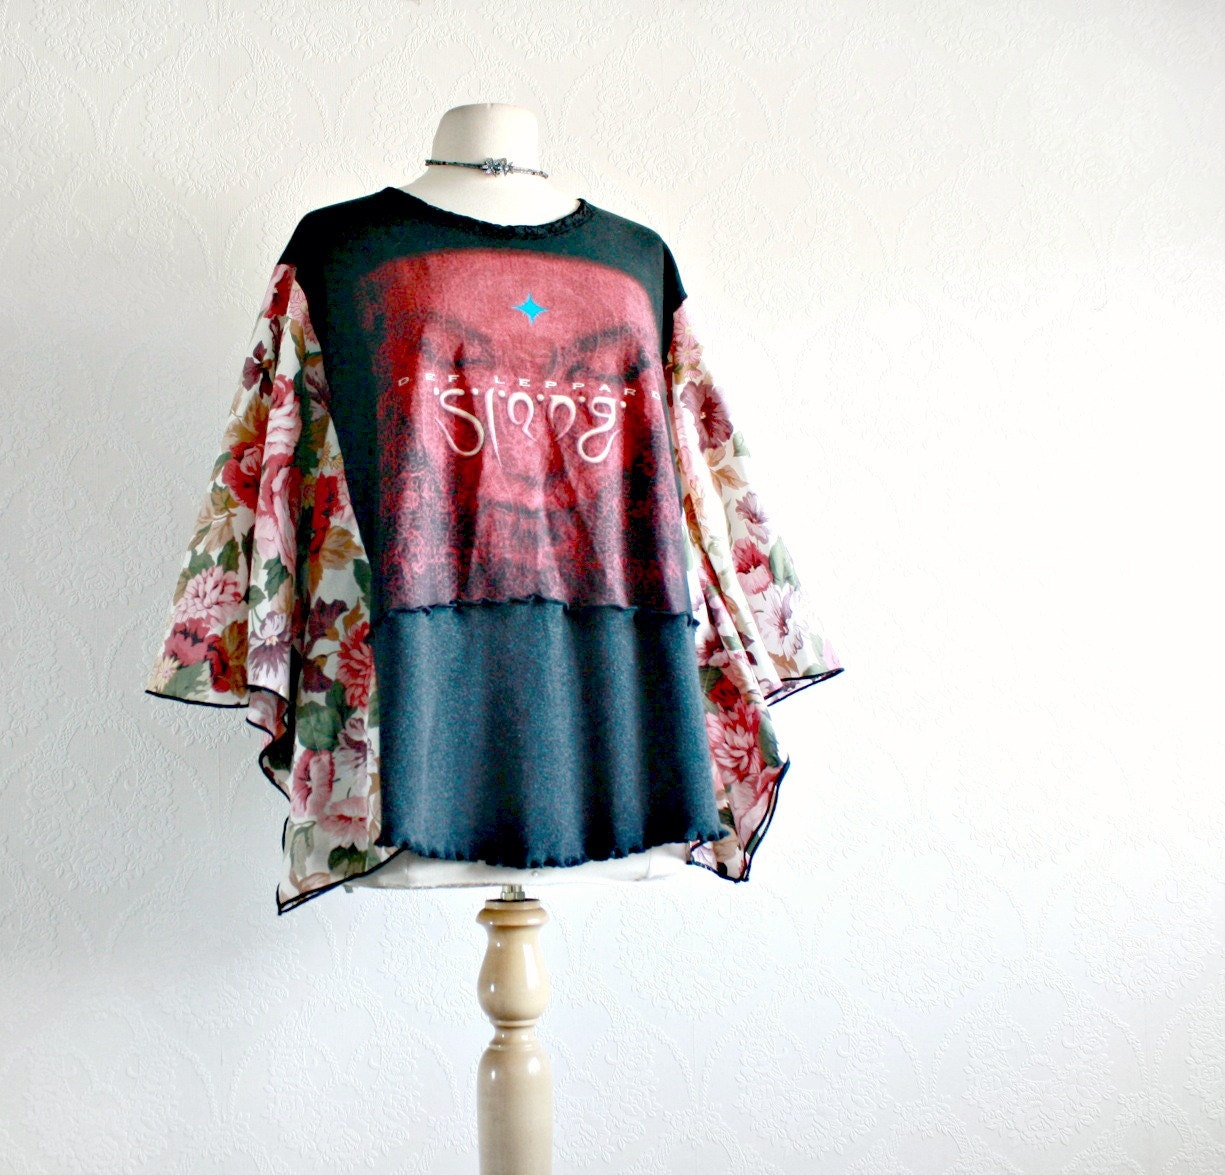 Plus Size 1x 2x Def Leppard Shirt Upcycled Clothes Concert